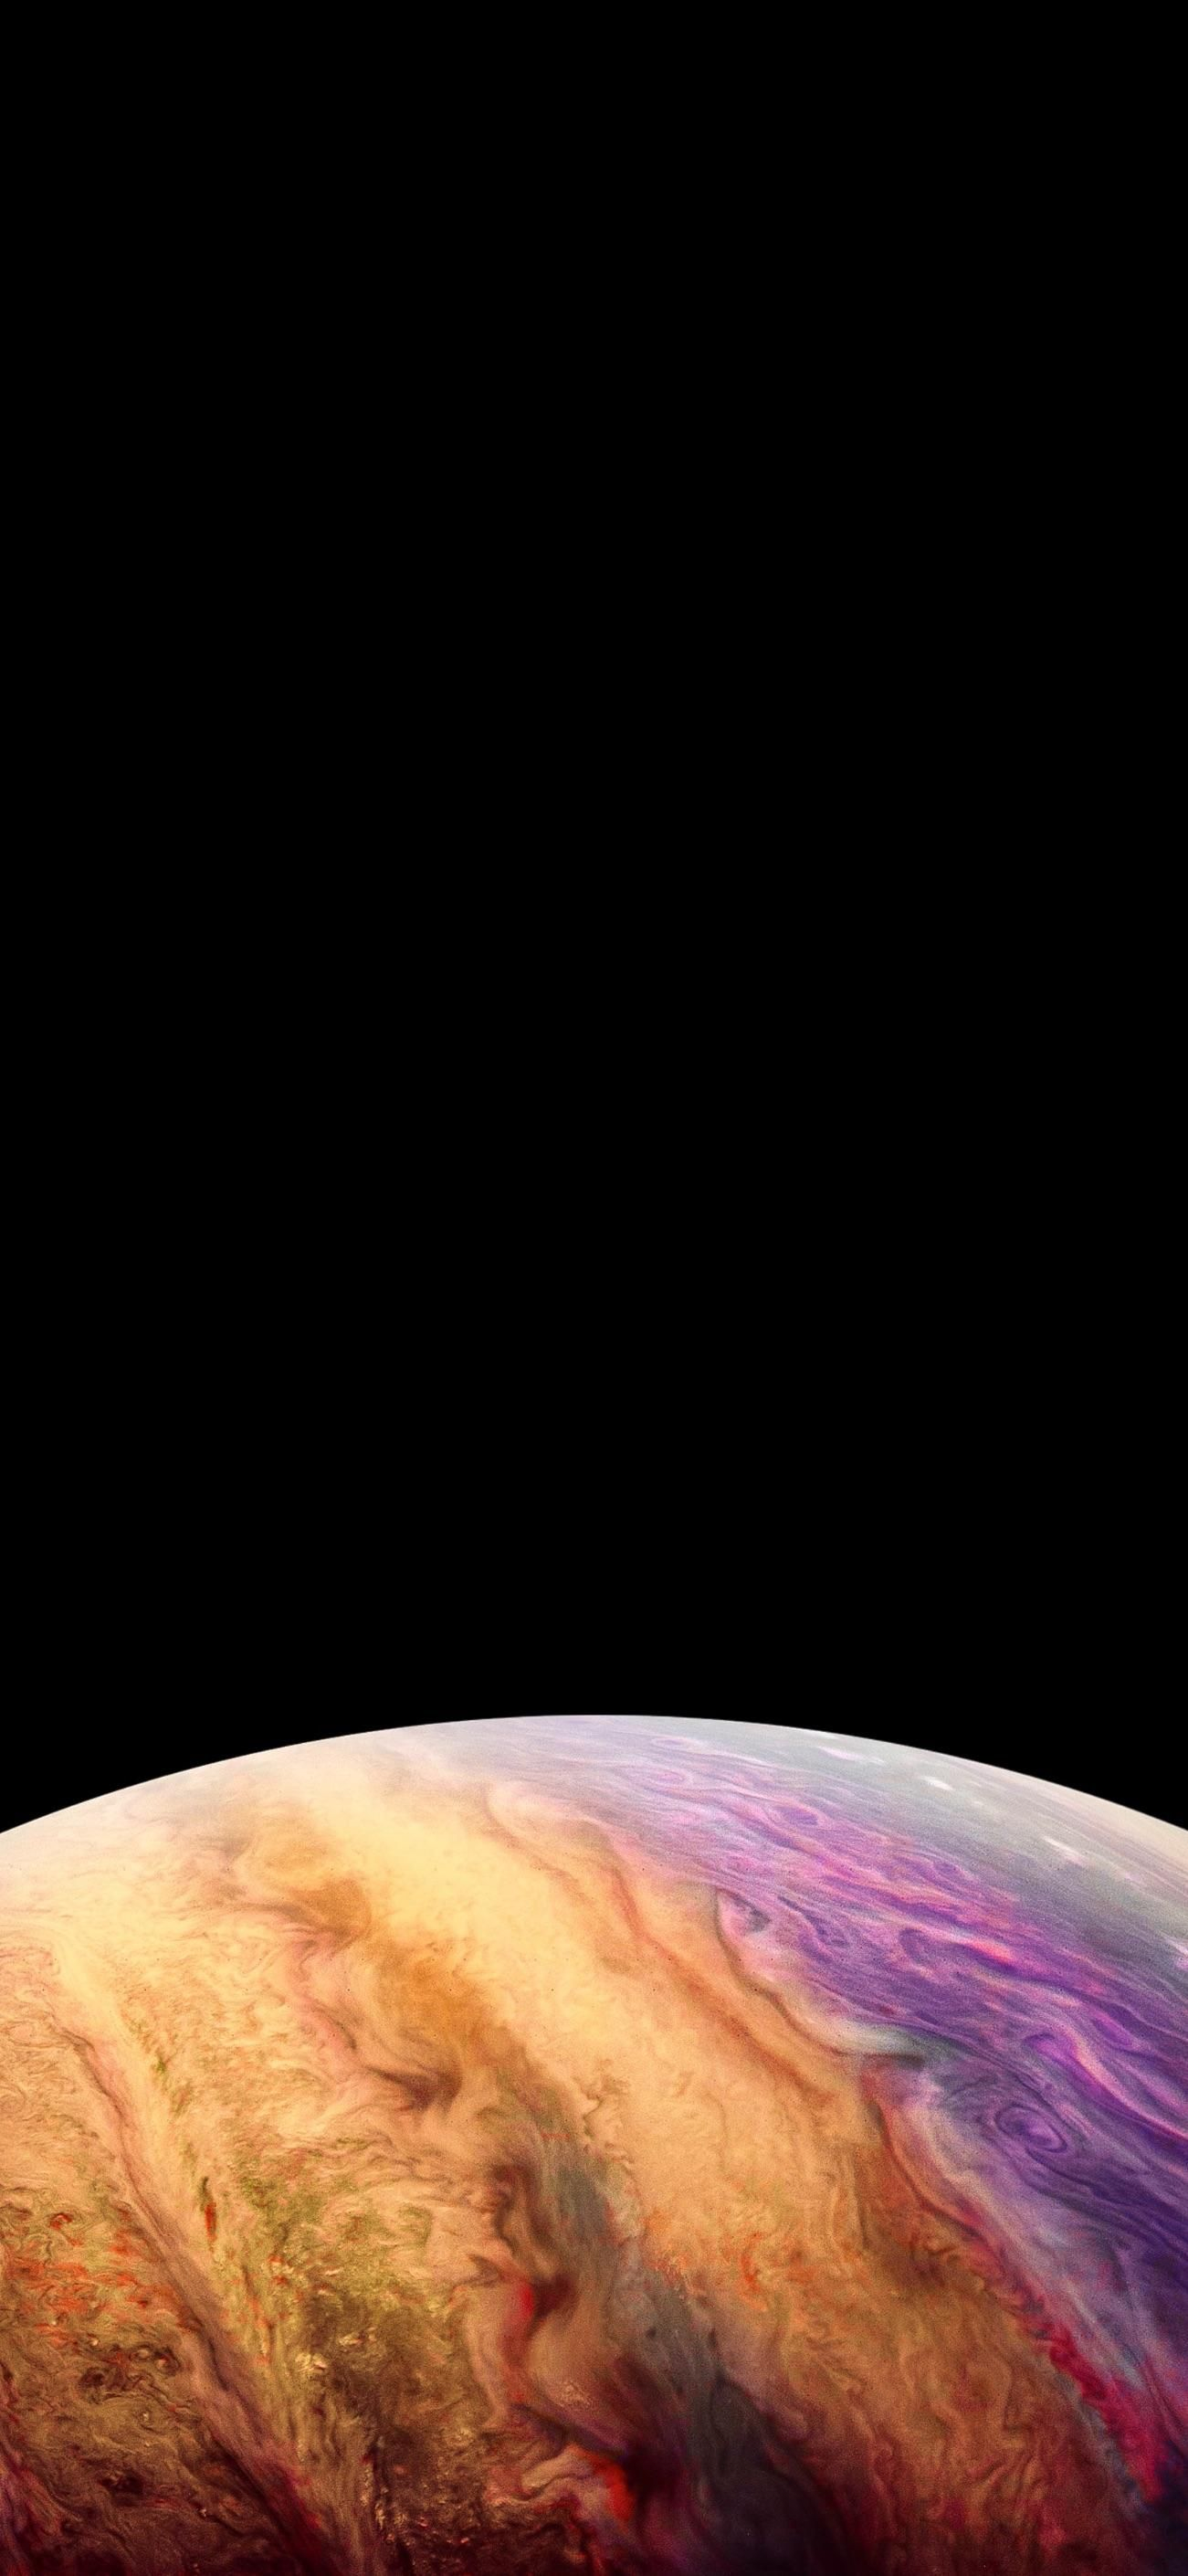 Iphone Xs Alternative Wallpaper V2 Ecran Iphone Fond Ecran